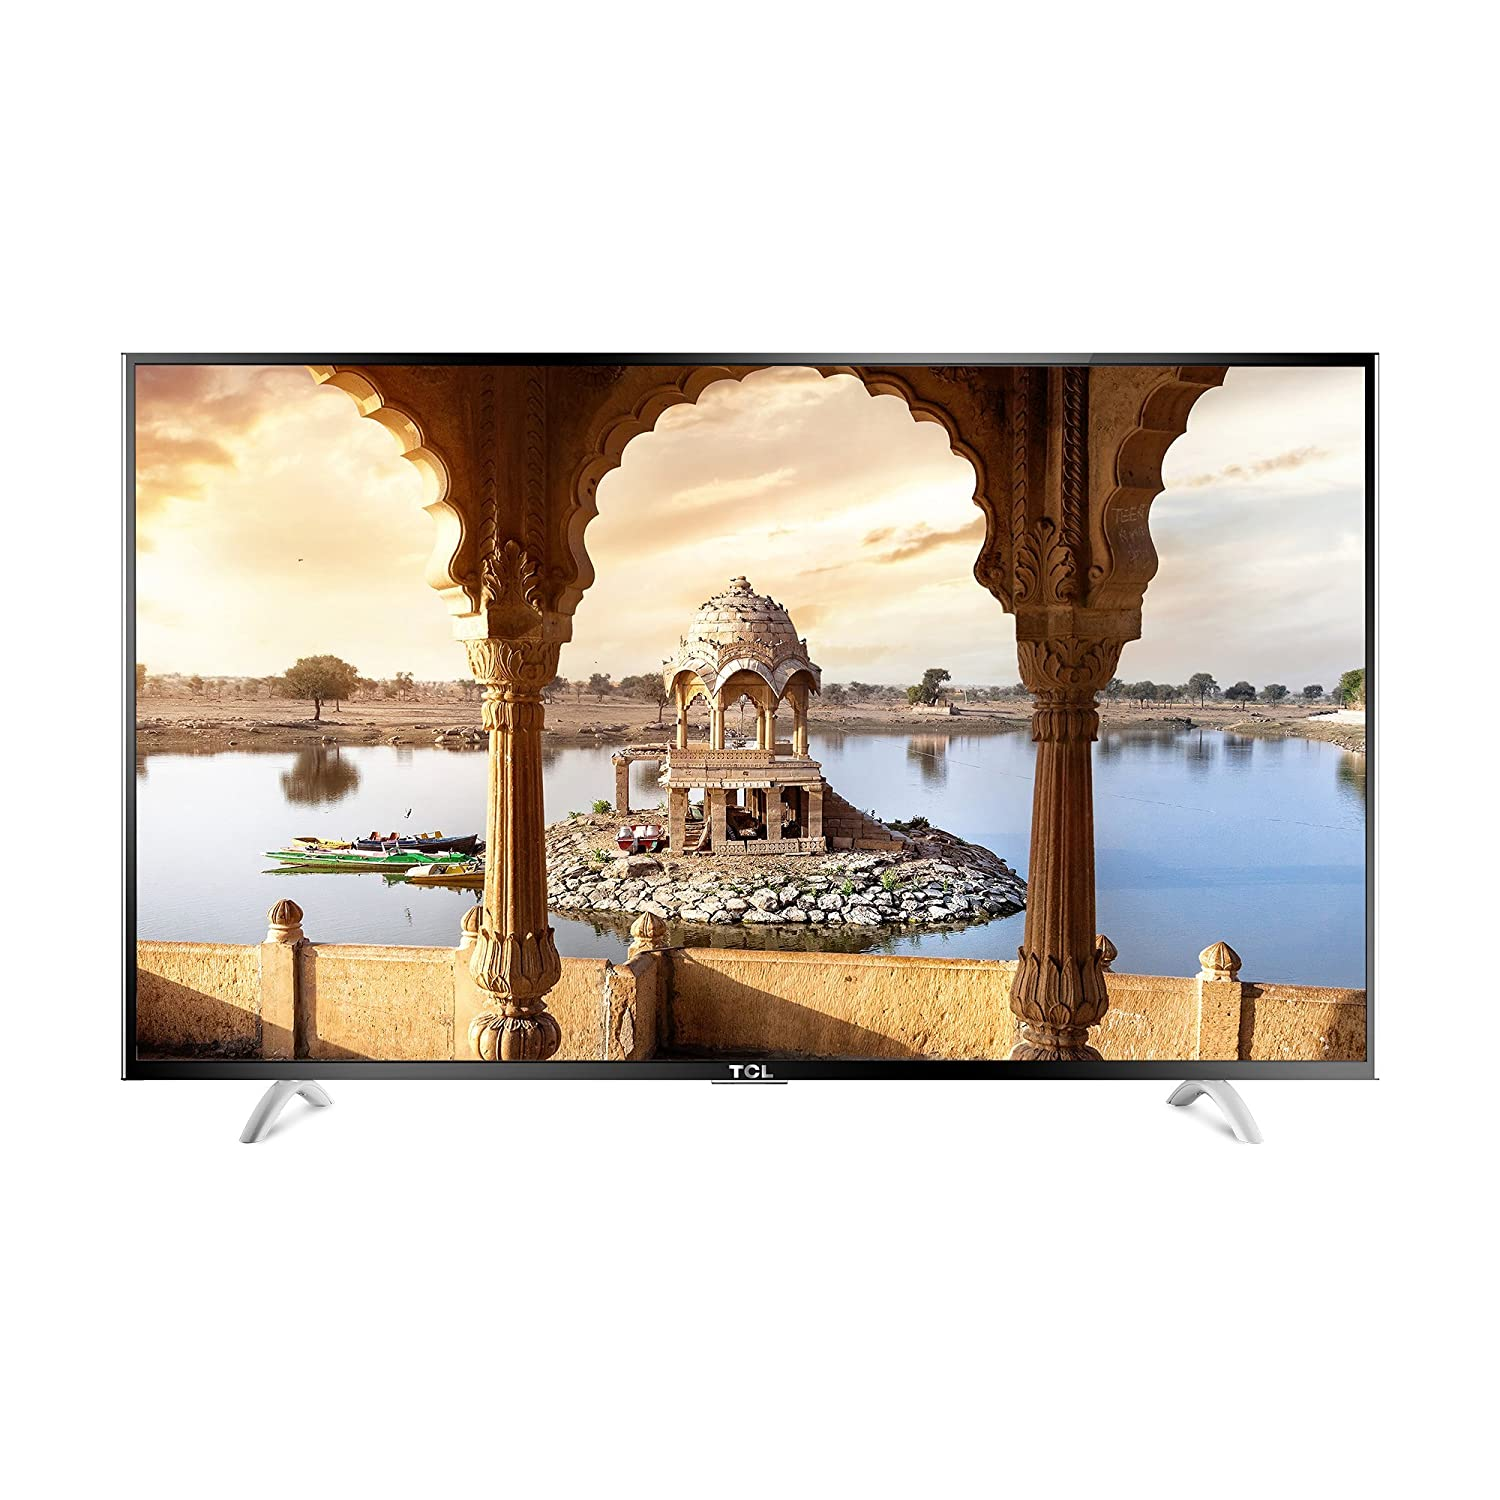 TCL 139.7 cm (55 inches) L55P1US 4K Ultra HD Smart LED TV (Black) By Amazon @ Rs.45,990